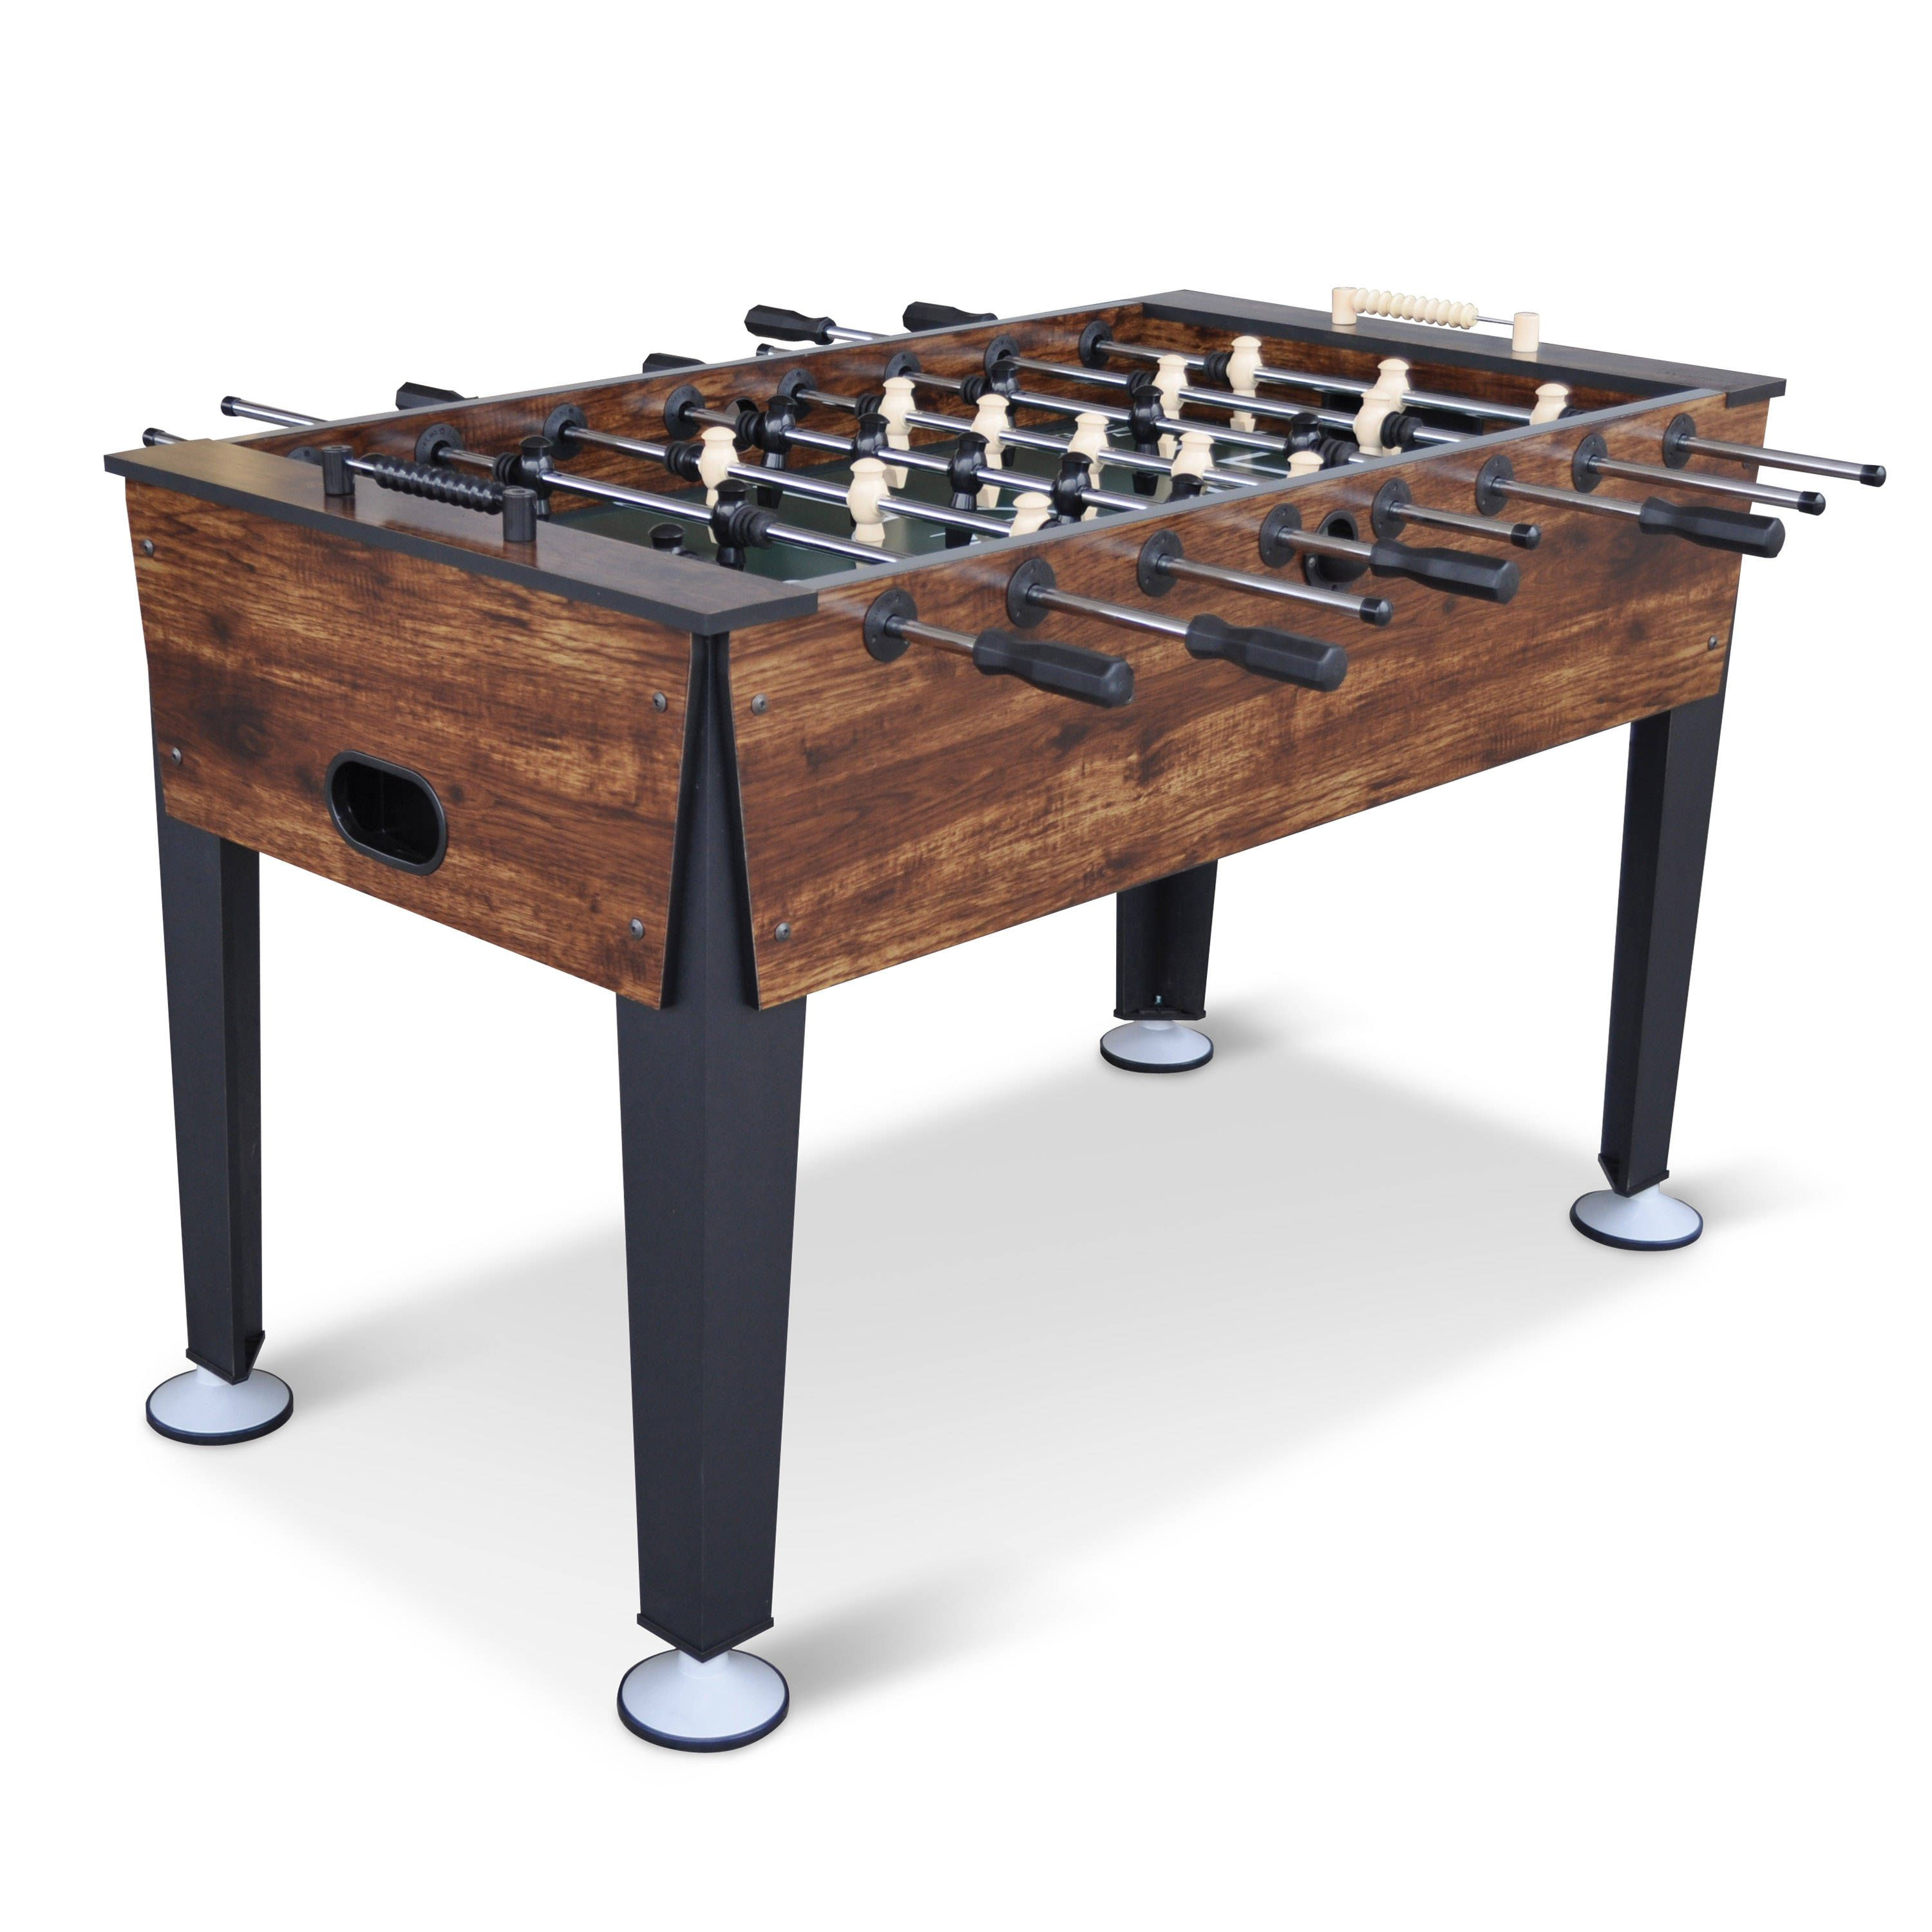 Buy eastpoint sports 54 newcastle foosball table at walmart buy eastpoint sports 54 newcastle foosball table at walmart free shipping geotapseo Image collections